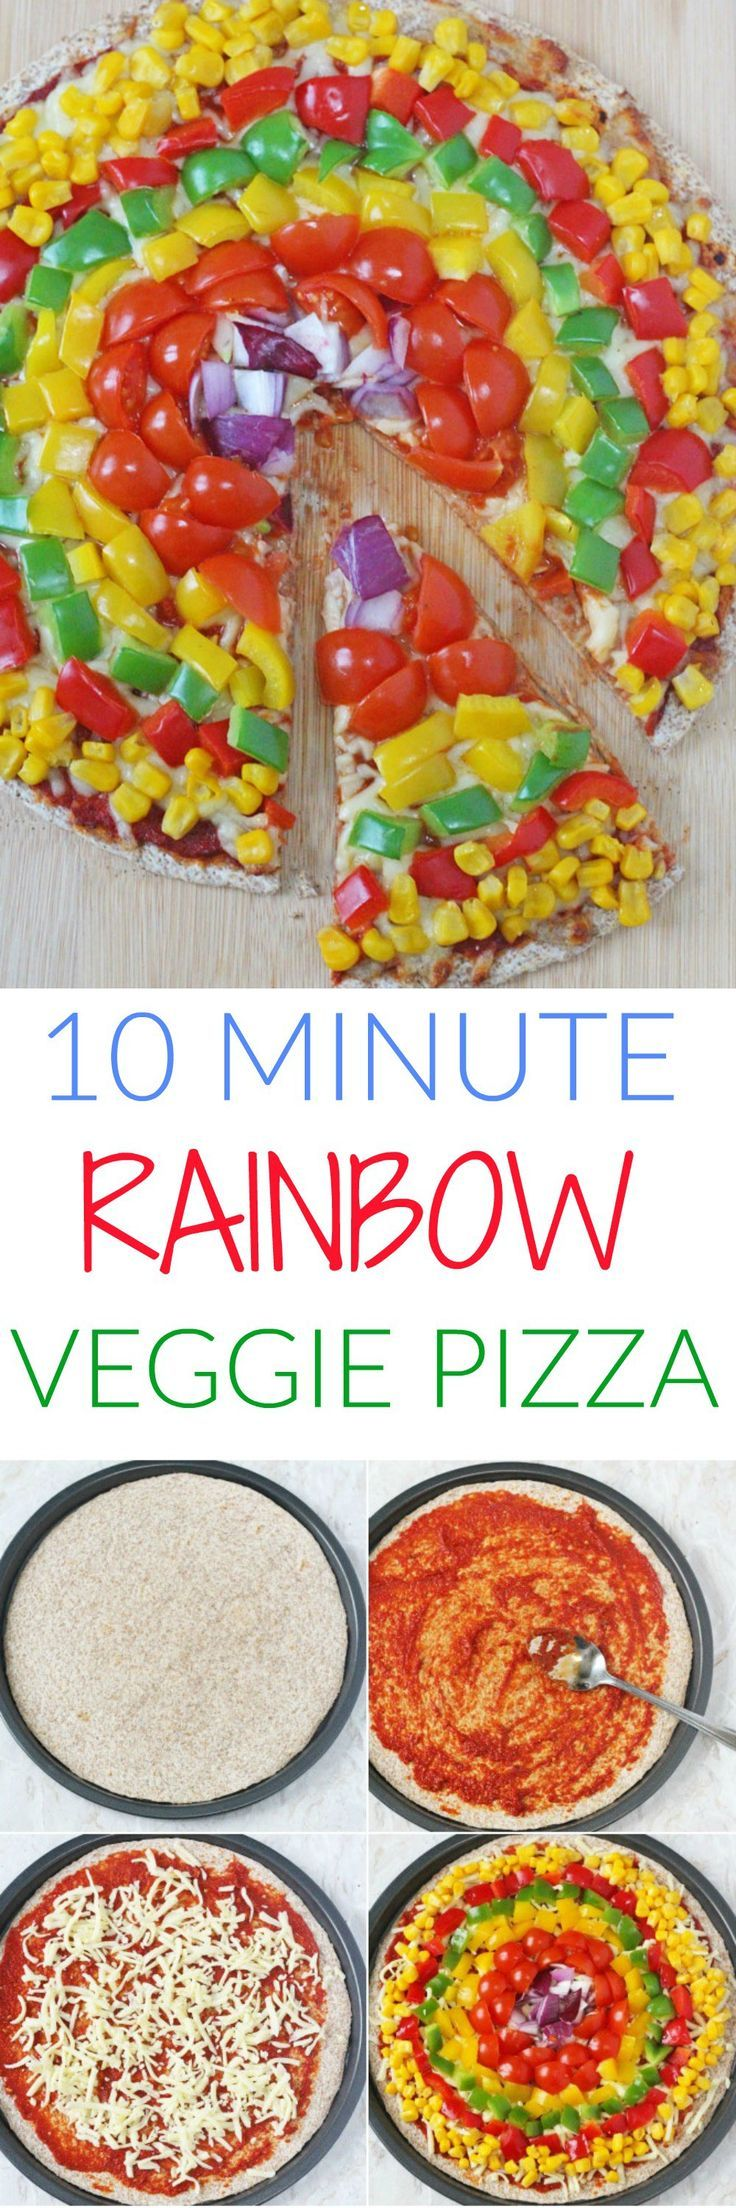 Rainbow Veggie Pizza for Kids - My Fussy Eater | Easy Kids Recipes